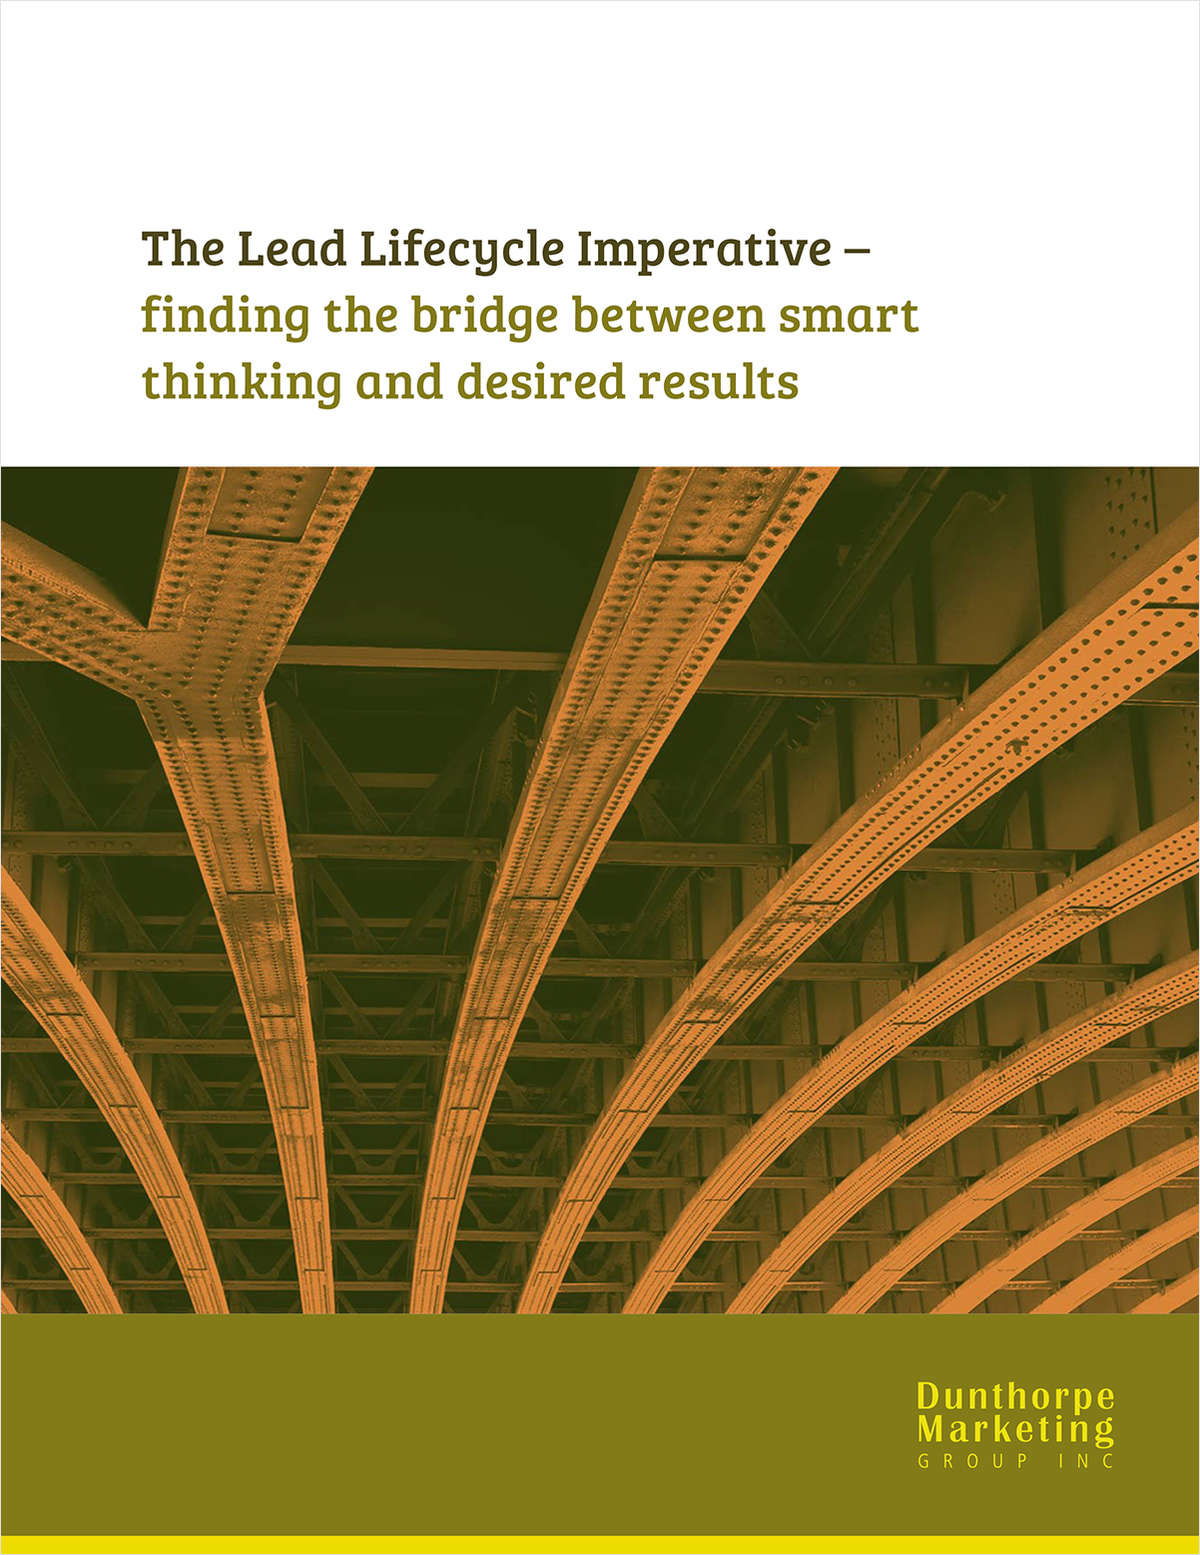 The Lead Lifecycle Imperative